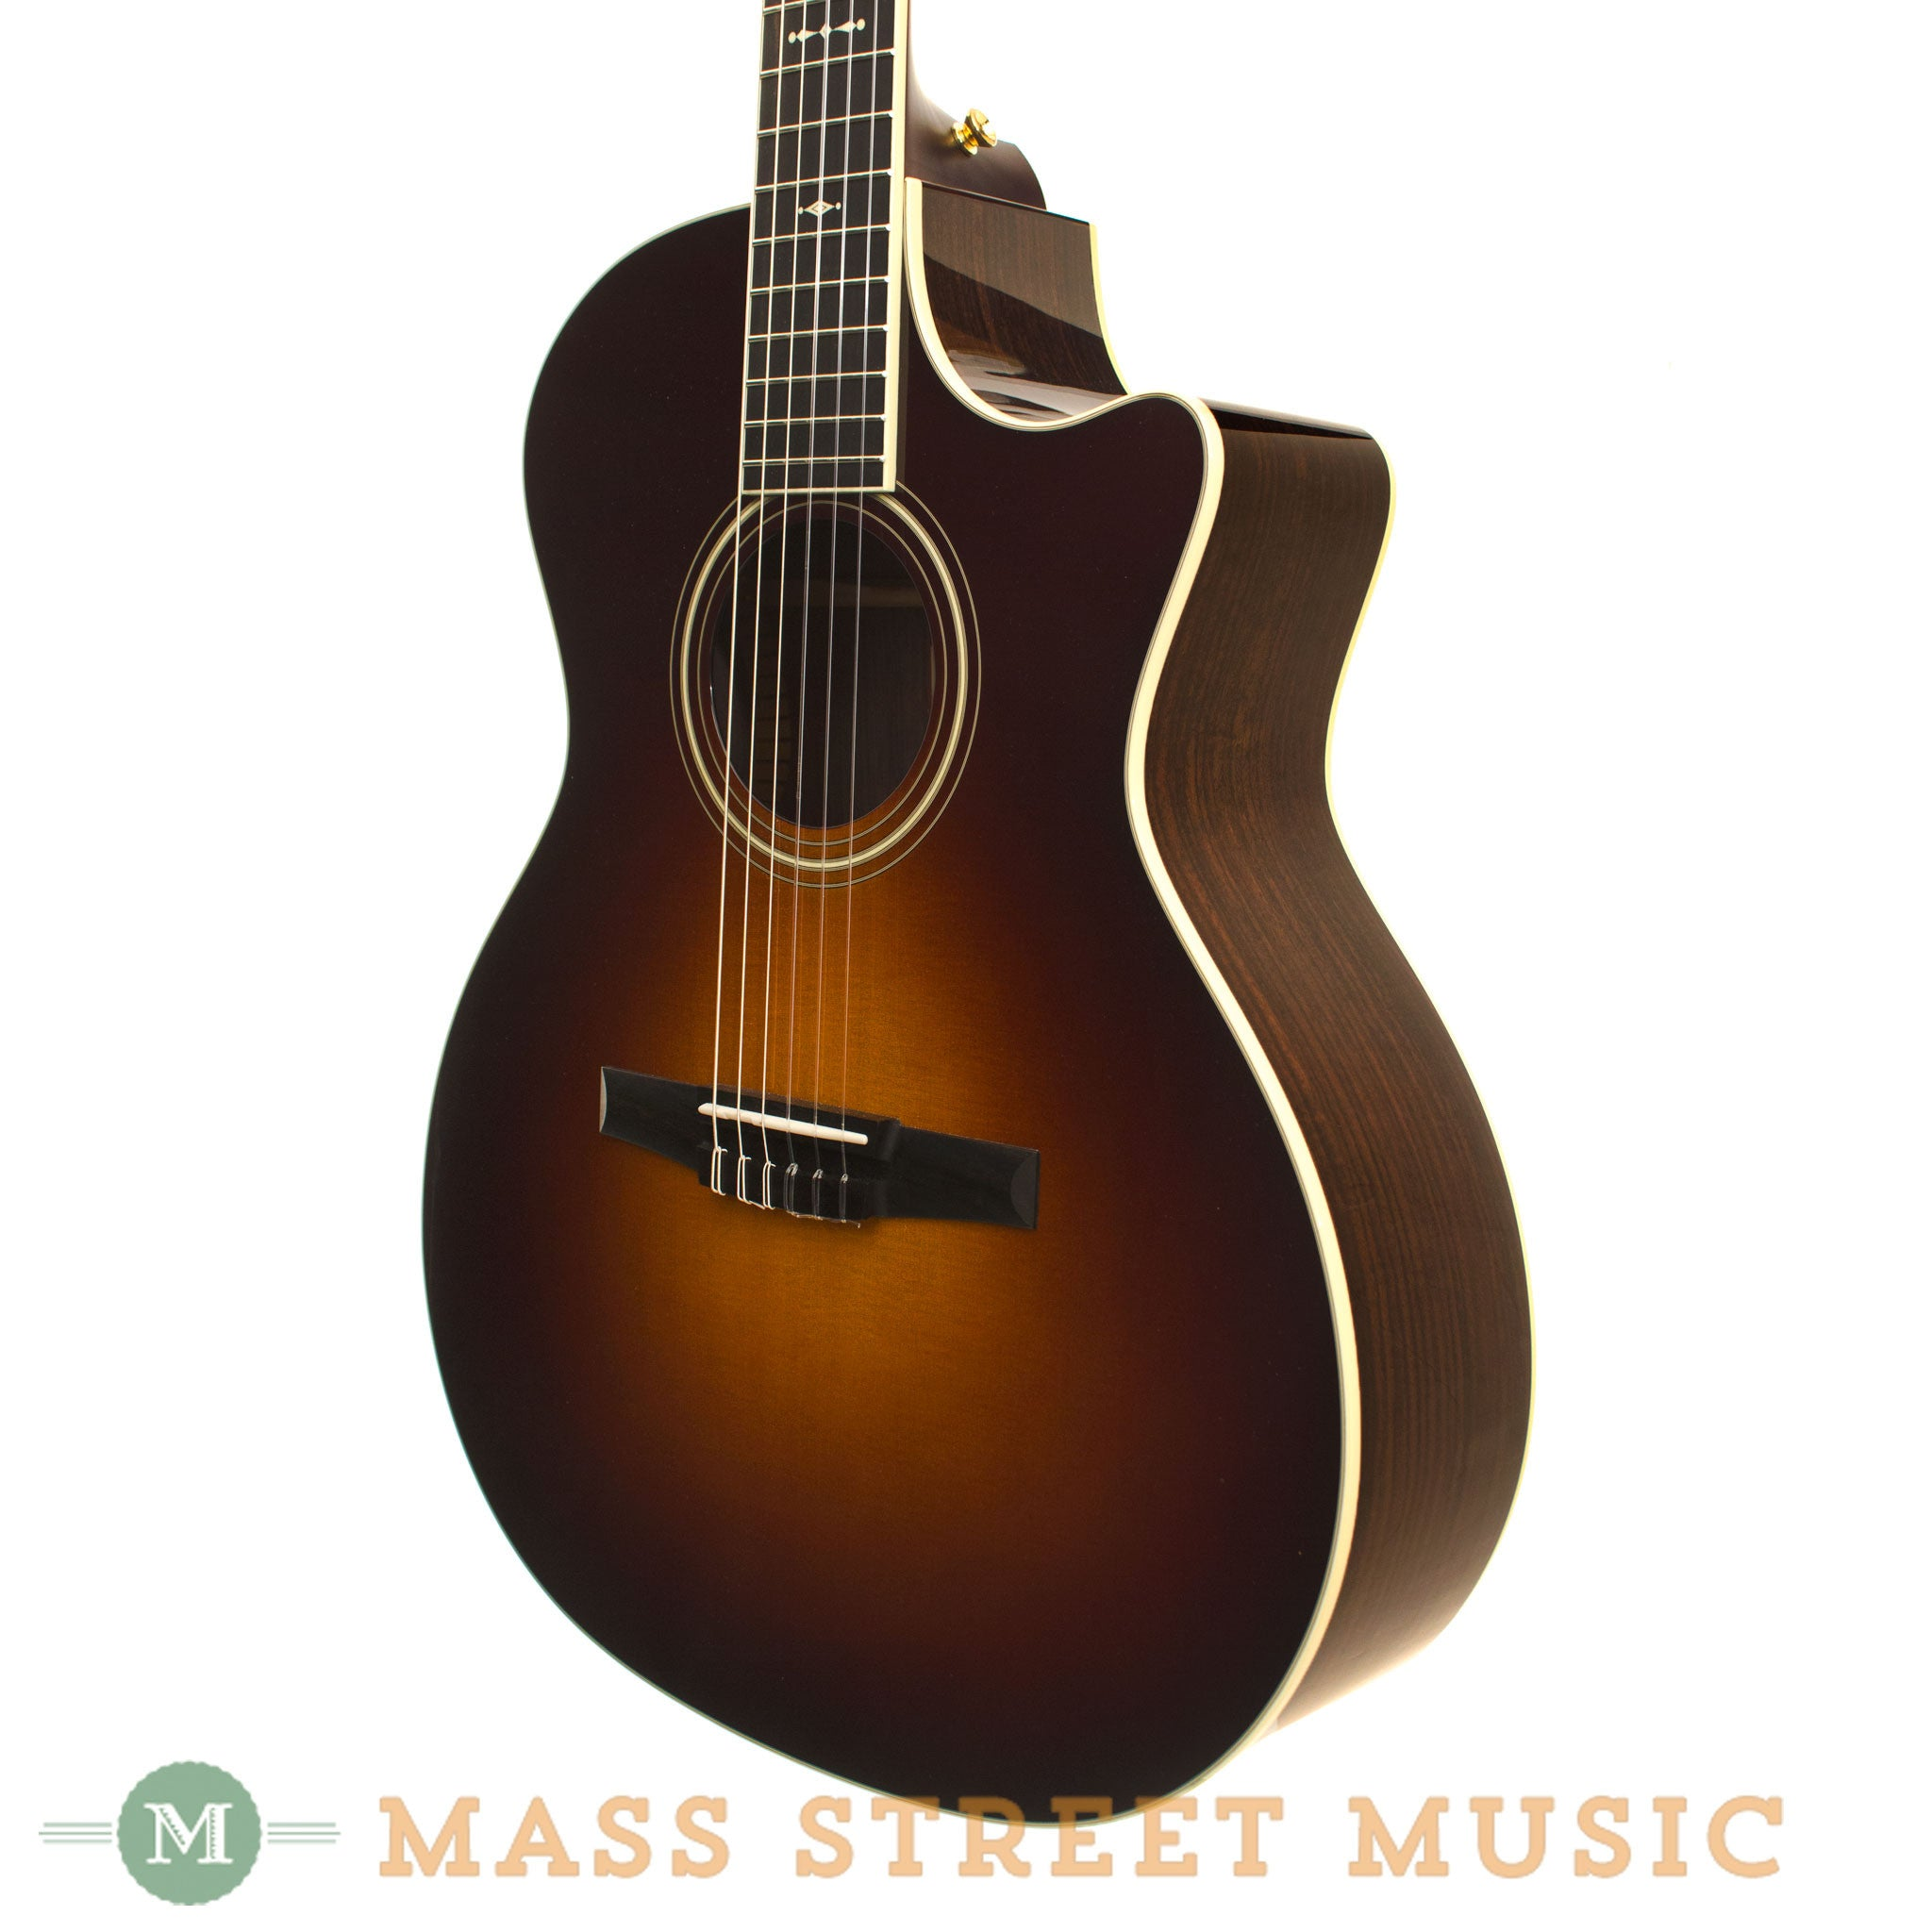 taylor 714ce n nylon string acoustic guitar with case mass street music store. Black Bedroom Furniture Sets. Home Design Ideas